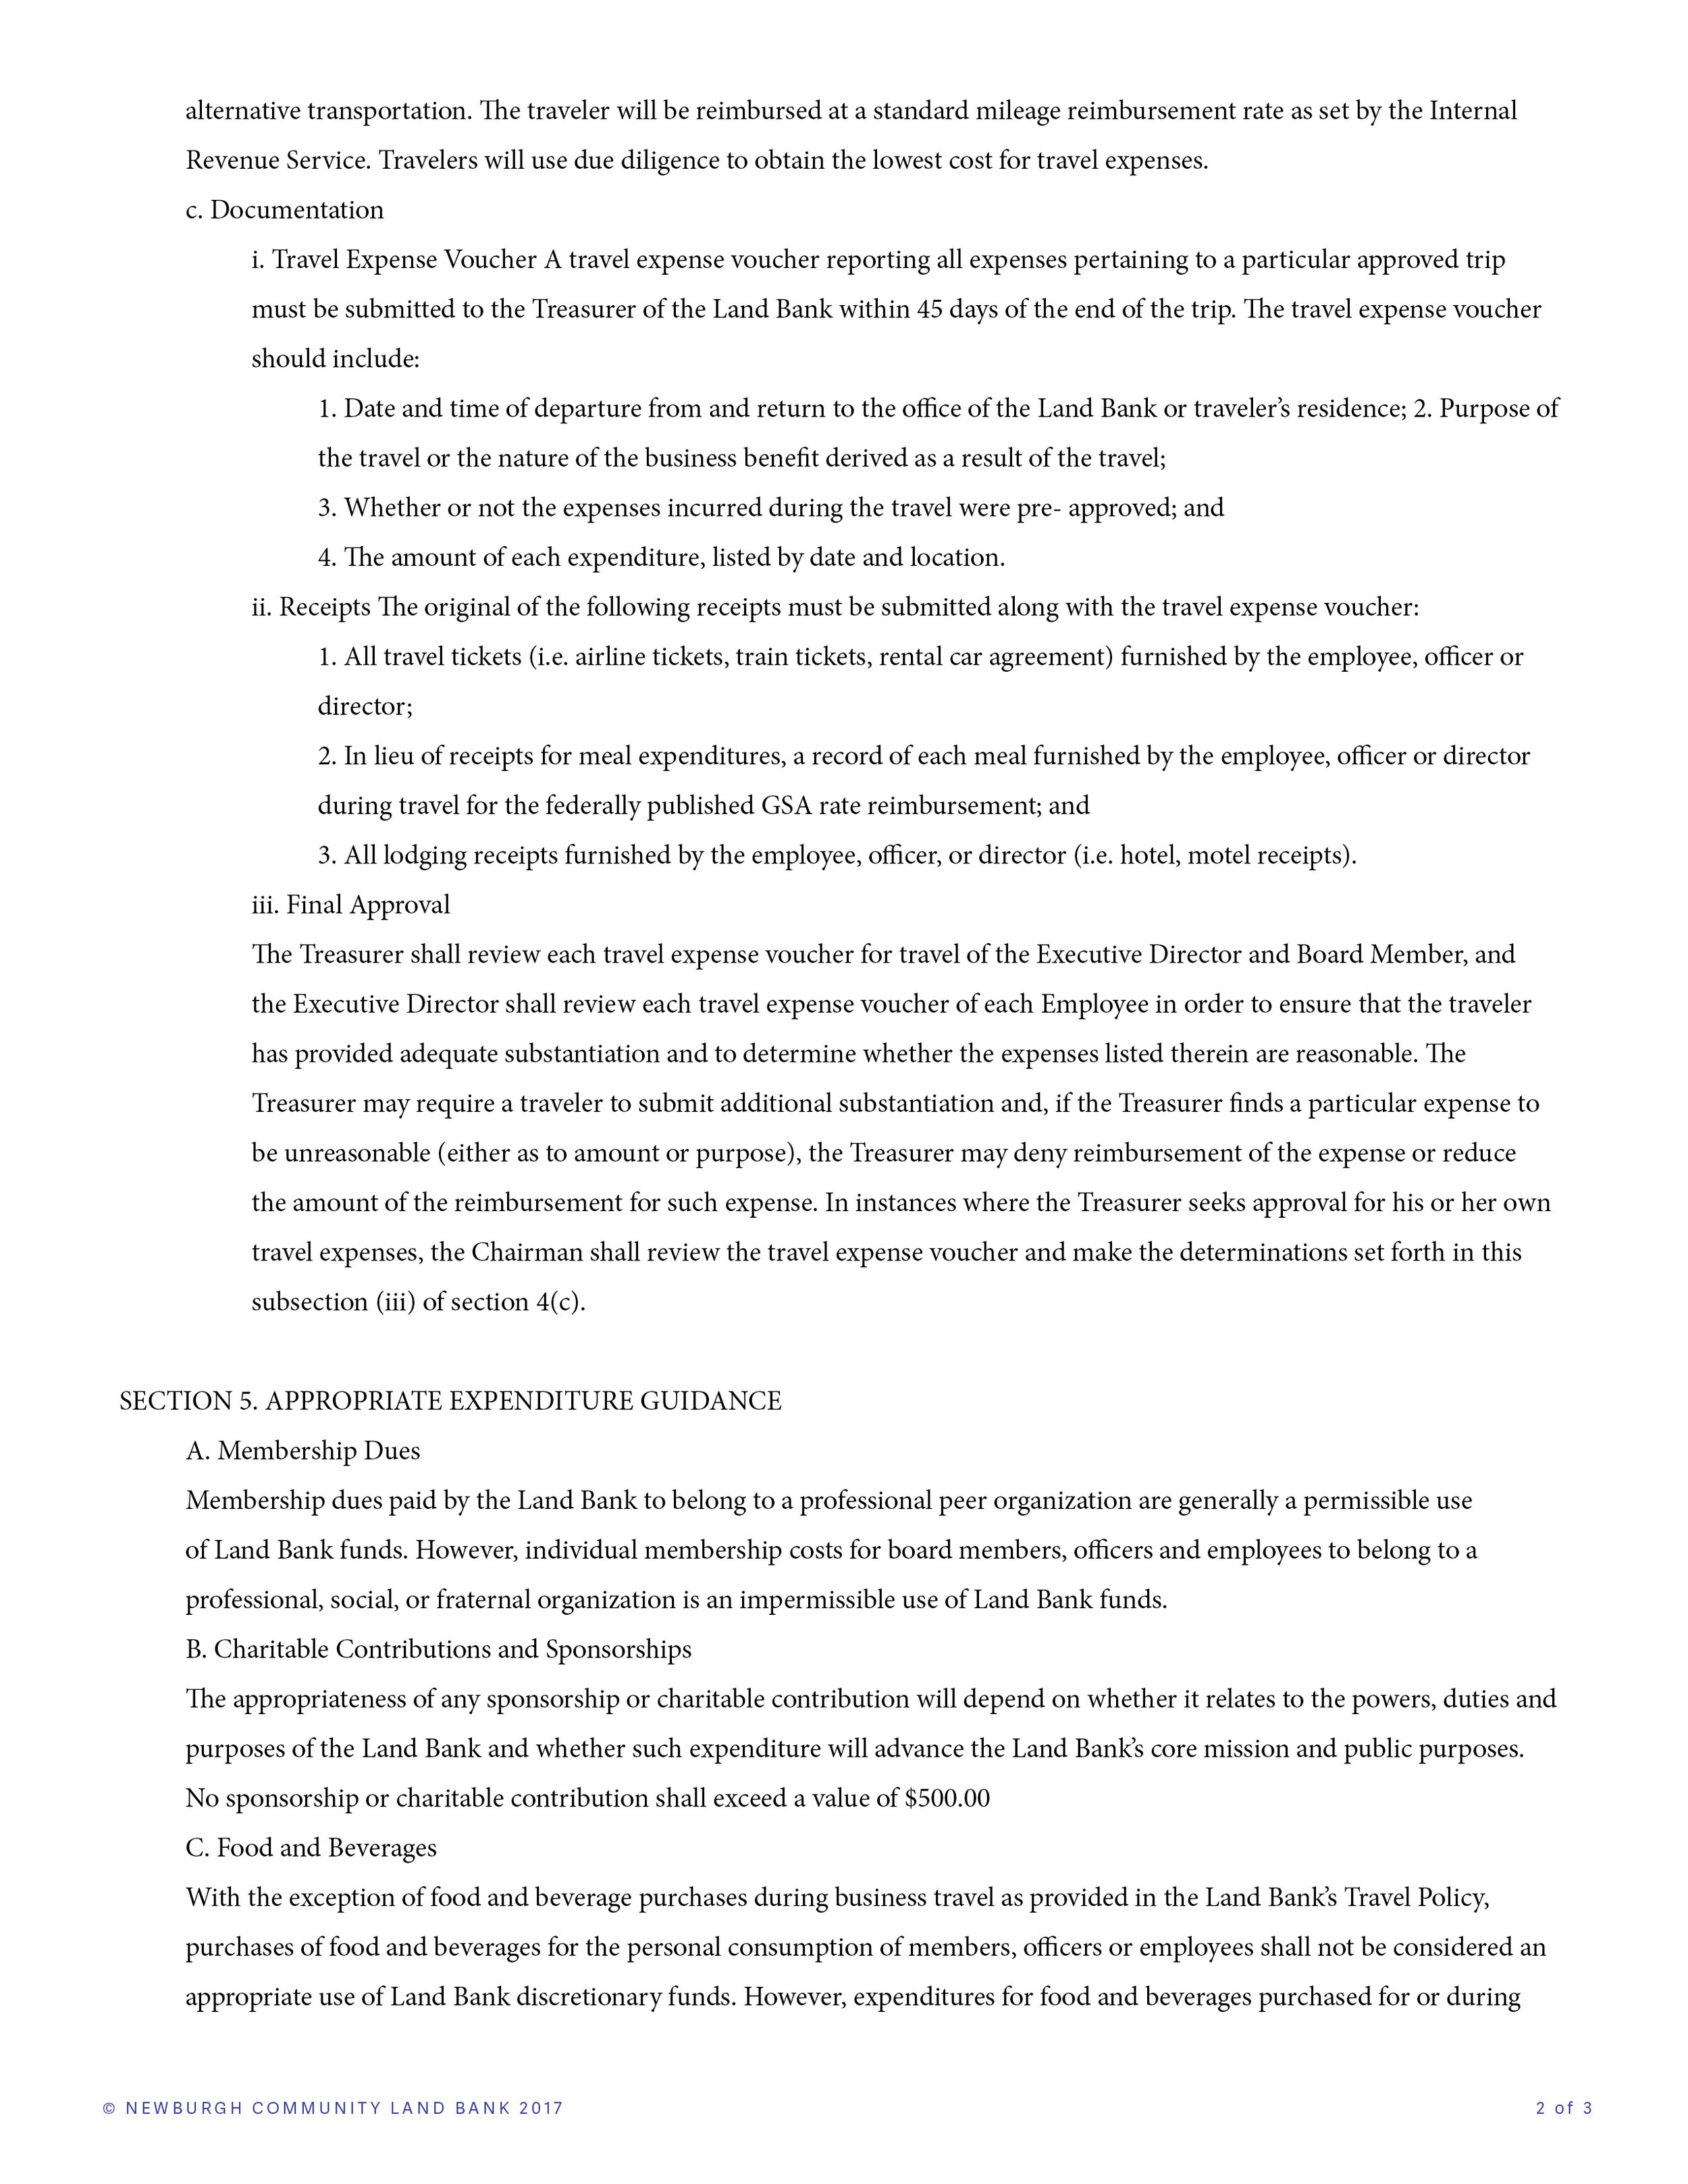 NCLB Travel & Discretionary Funds Policy2.jpg